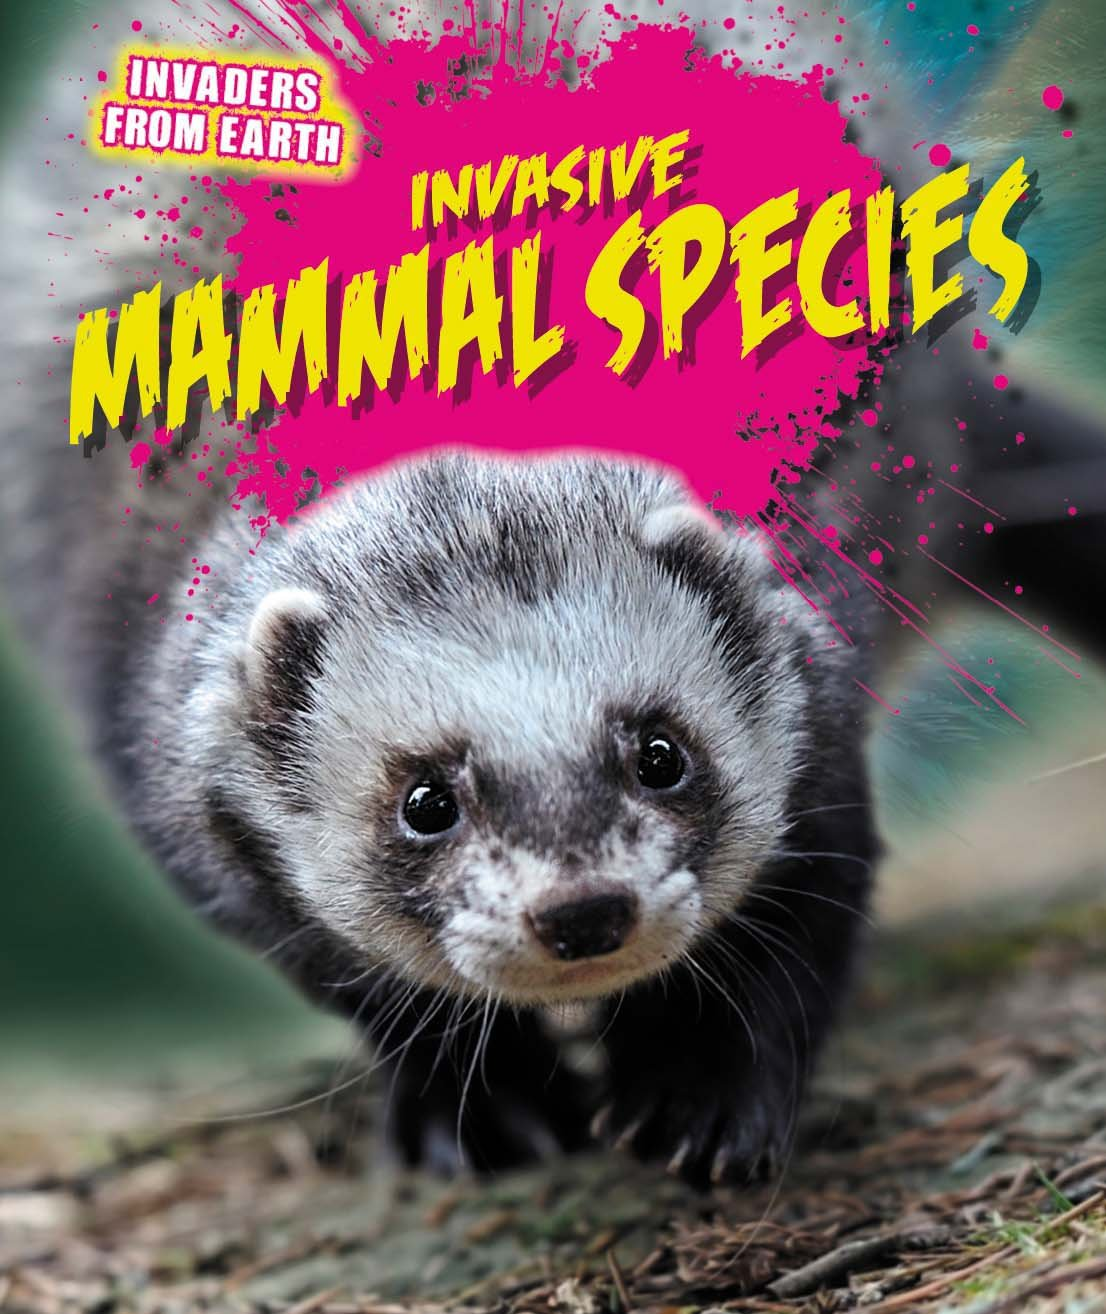 Invasive Mammal Species (Invaders from Earth)